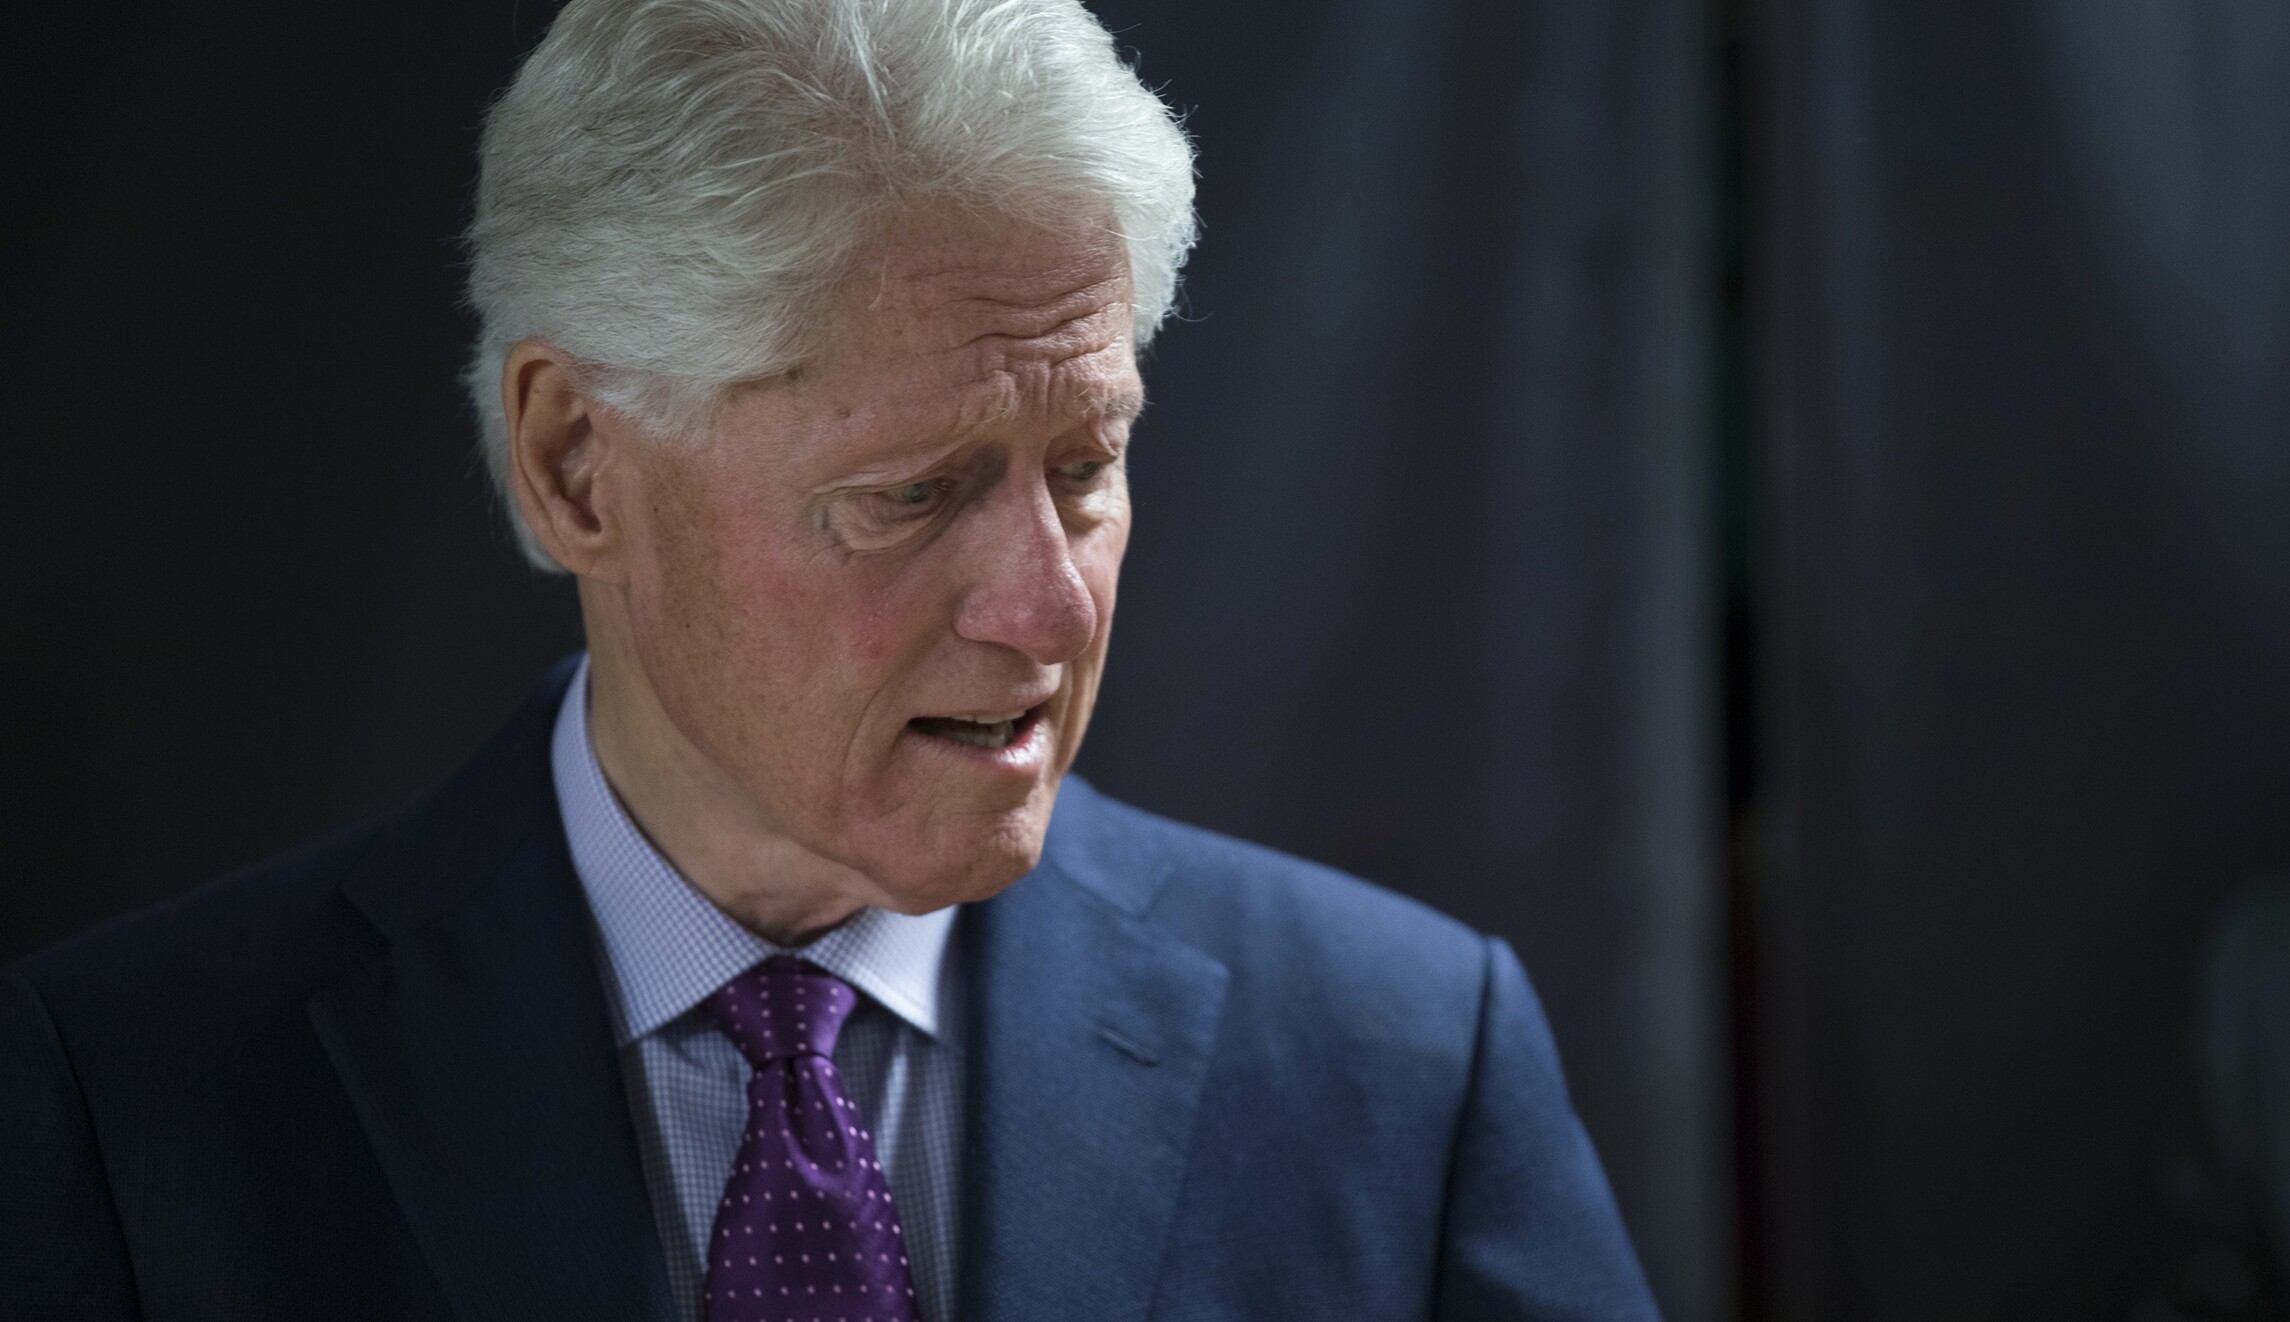 Hillary Clinton's trouble with truth: Bill Clinton's impeachment was never about sex